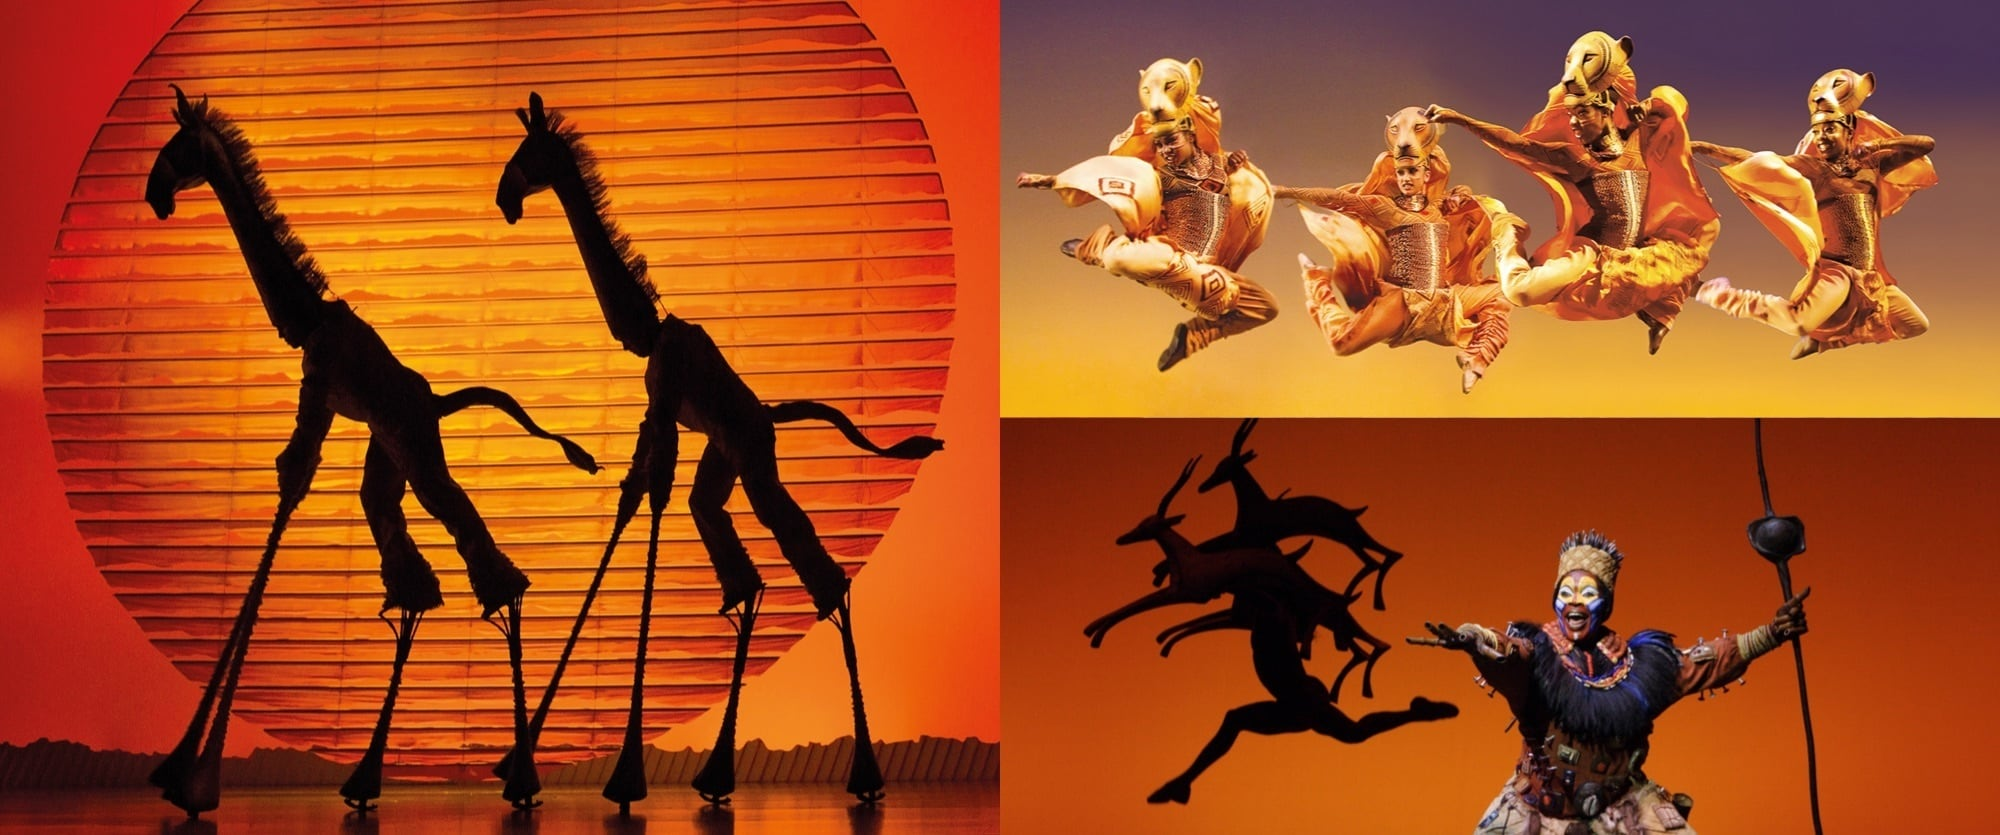 Stills from the The Lion King stage show featuring giraffes, Rafiki and the Lionesses hunt